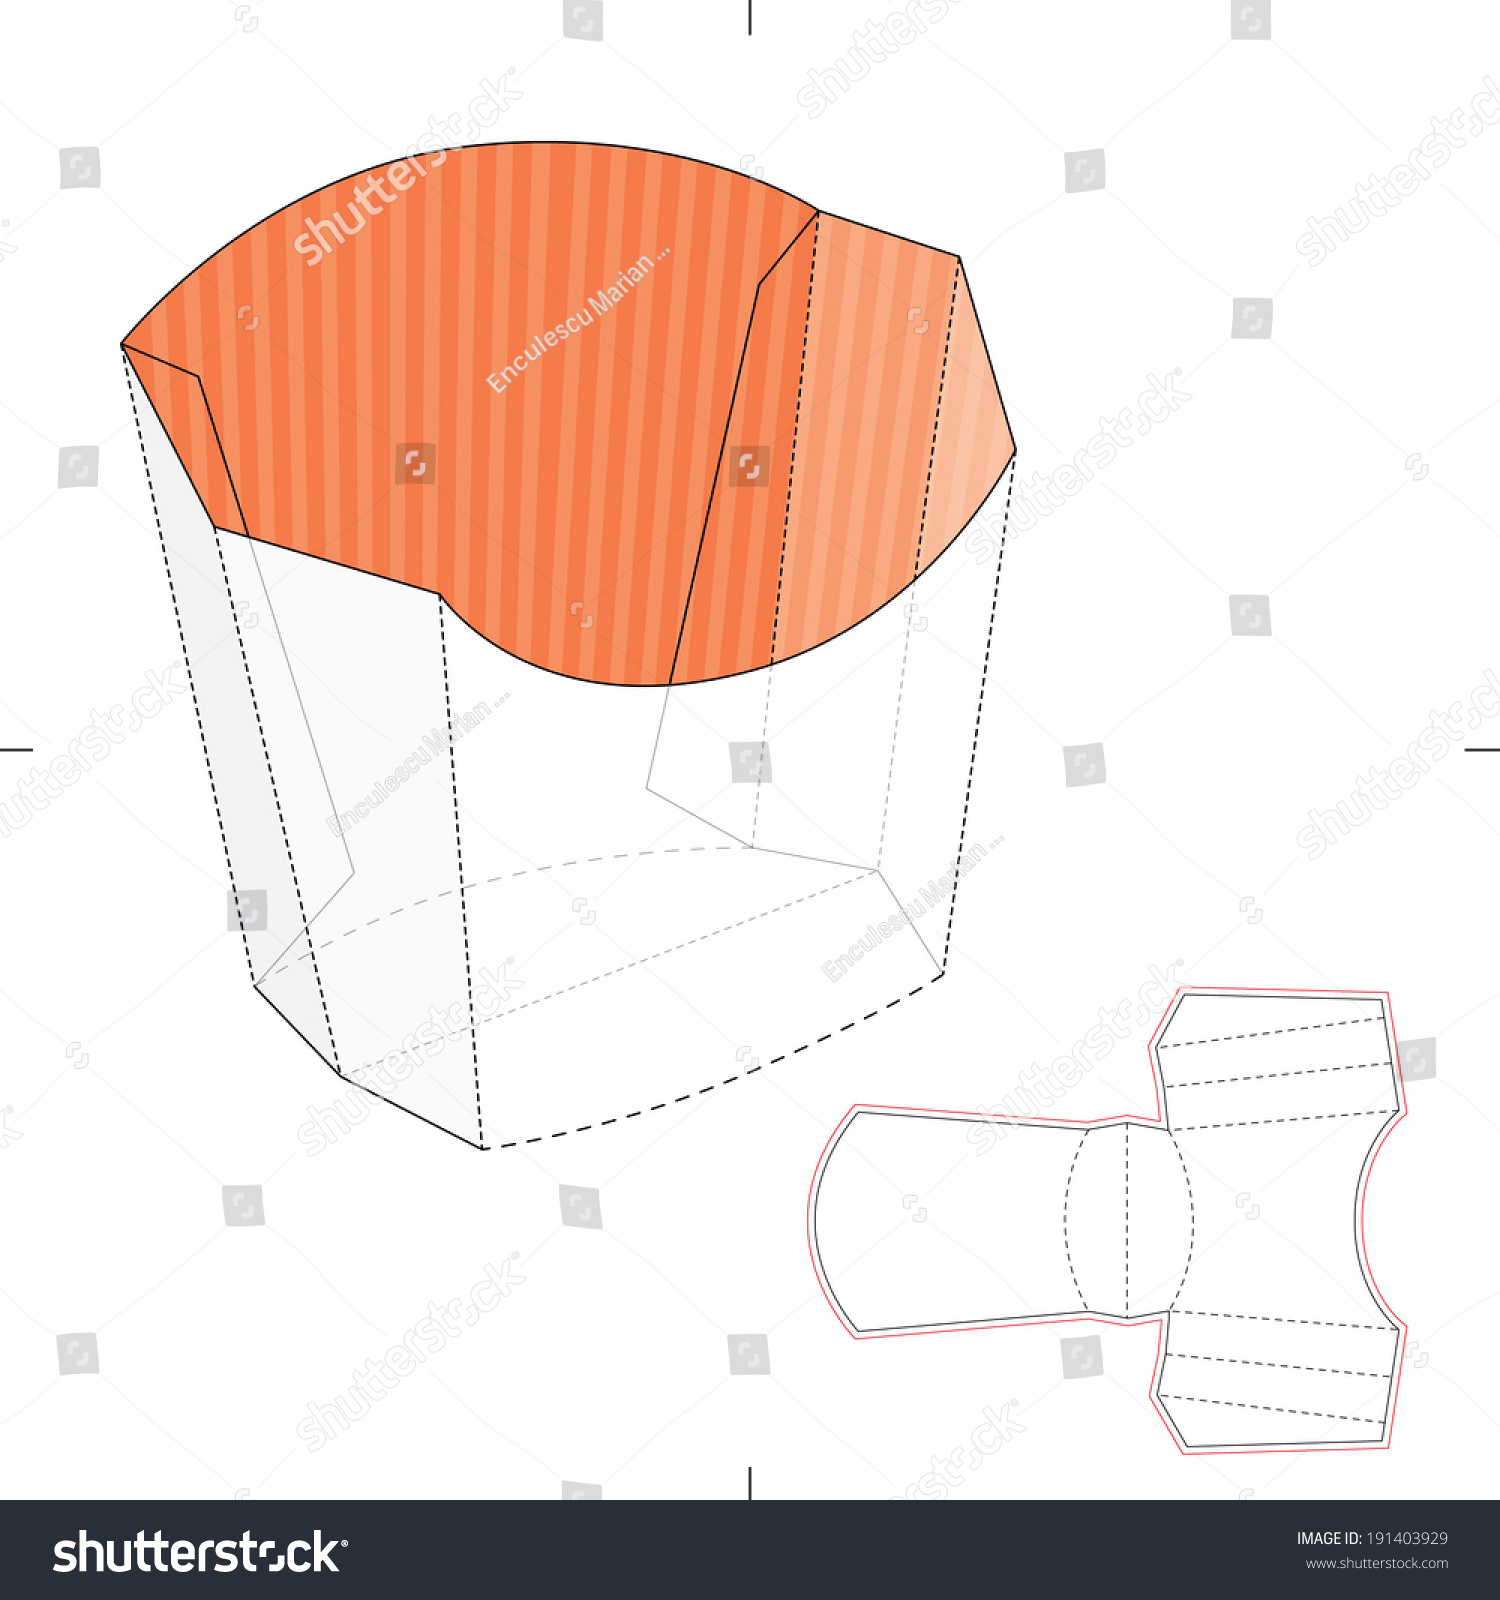 French fries disposable paper box die stock vector for French fries packaging template